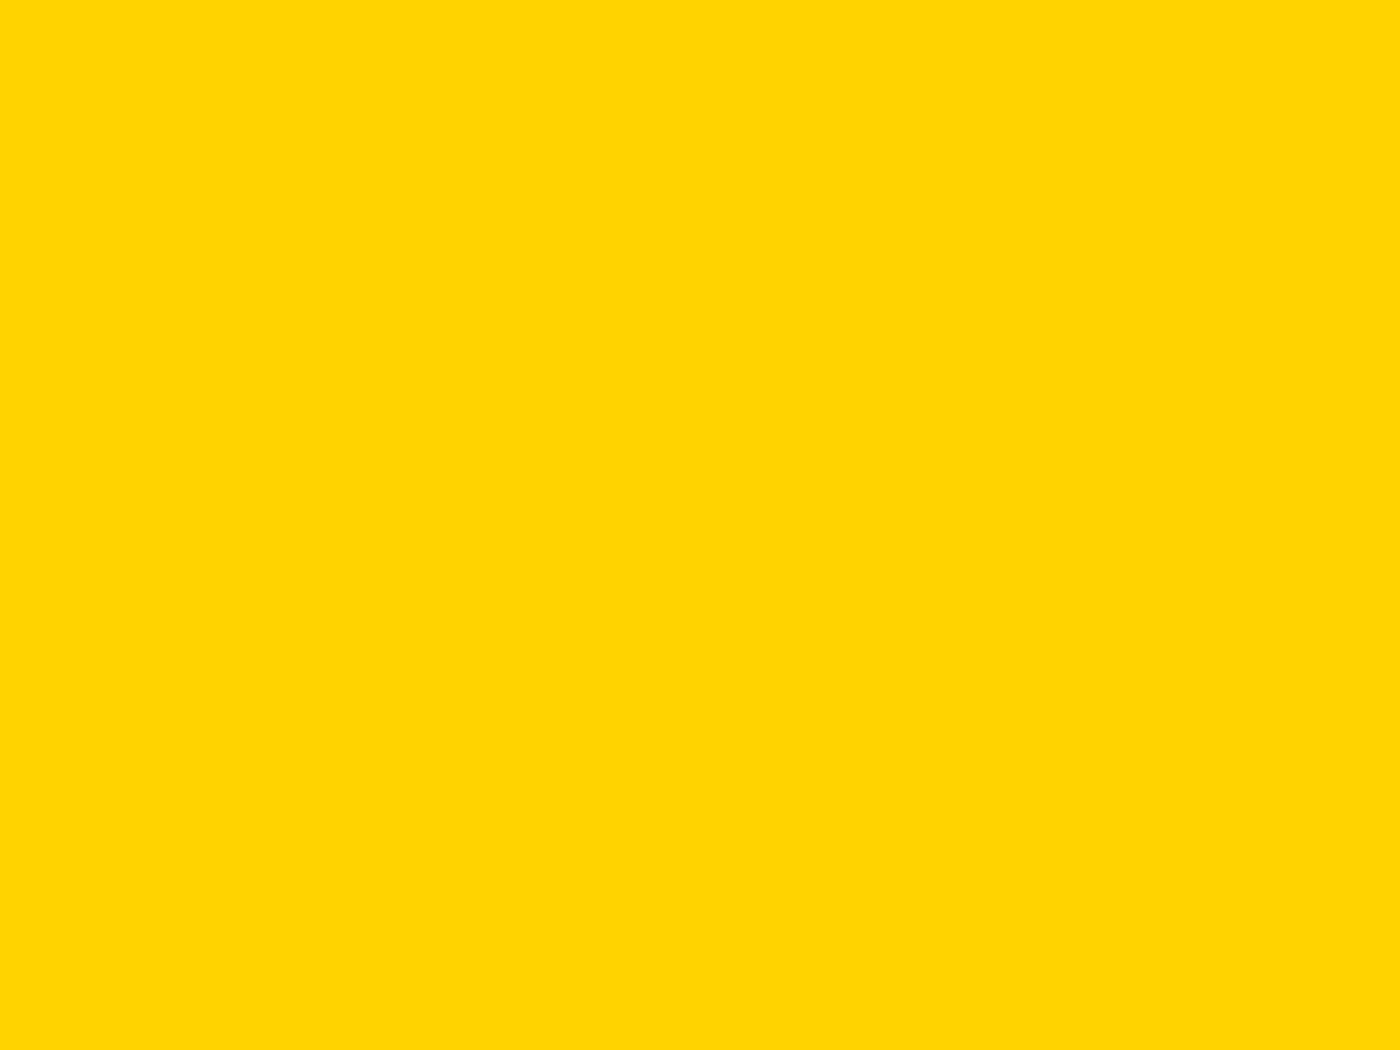 1400x1050 Yellow NCS Solid Color Background